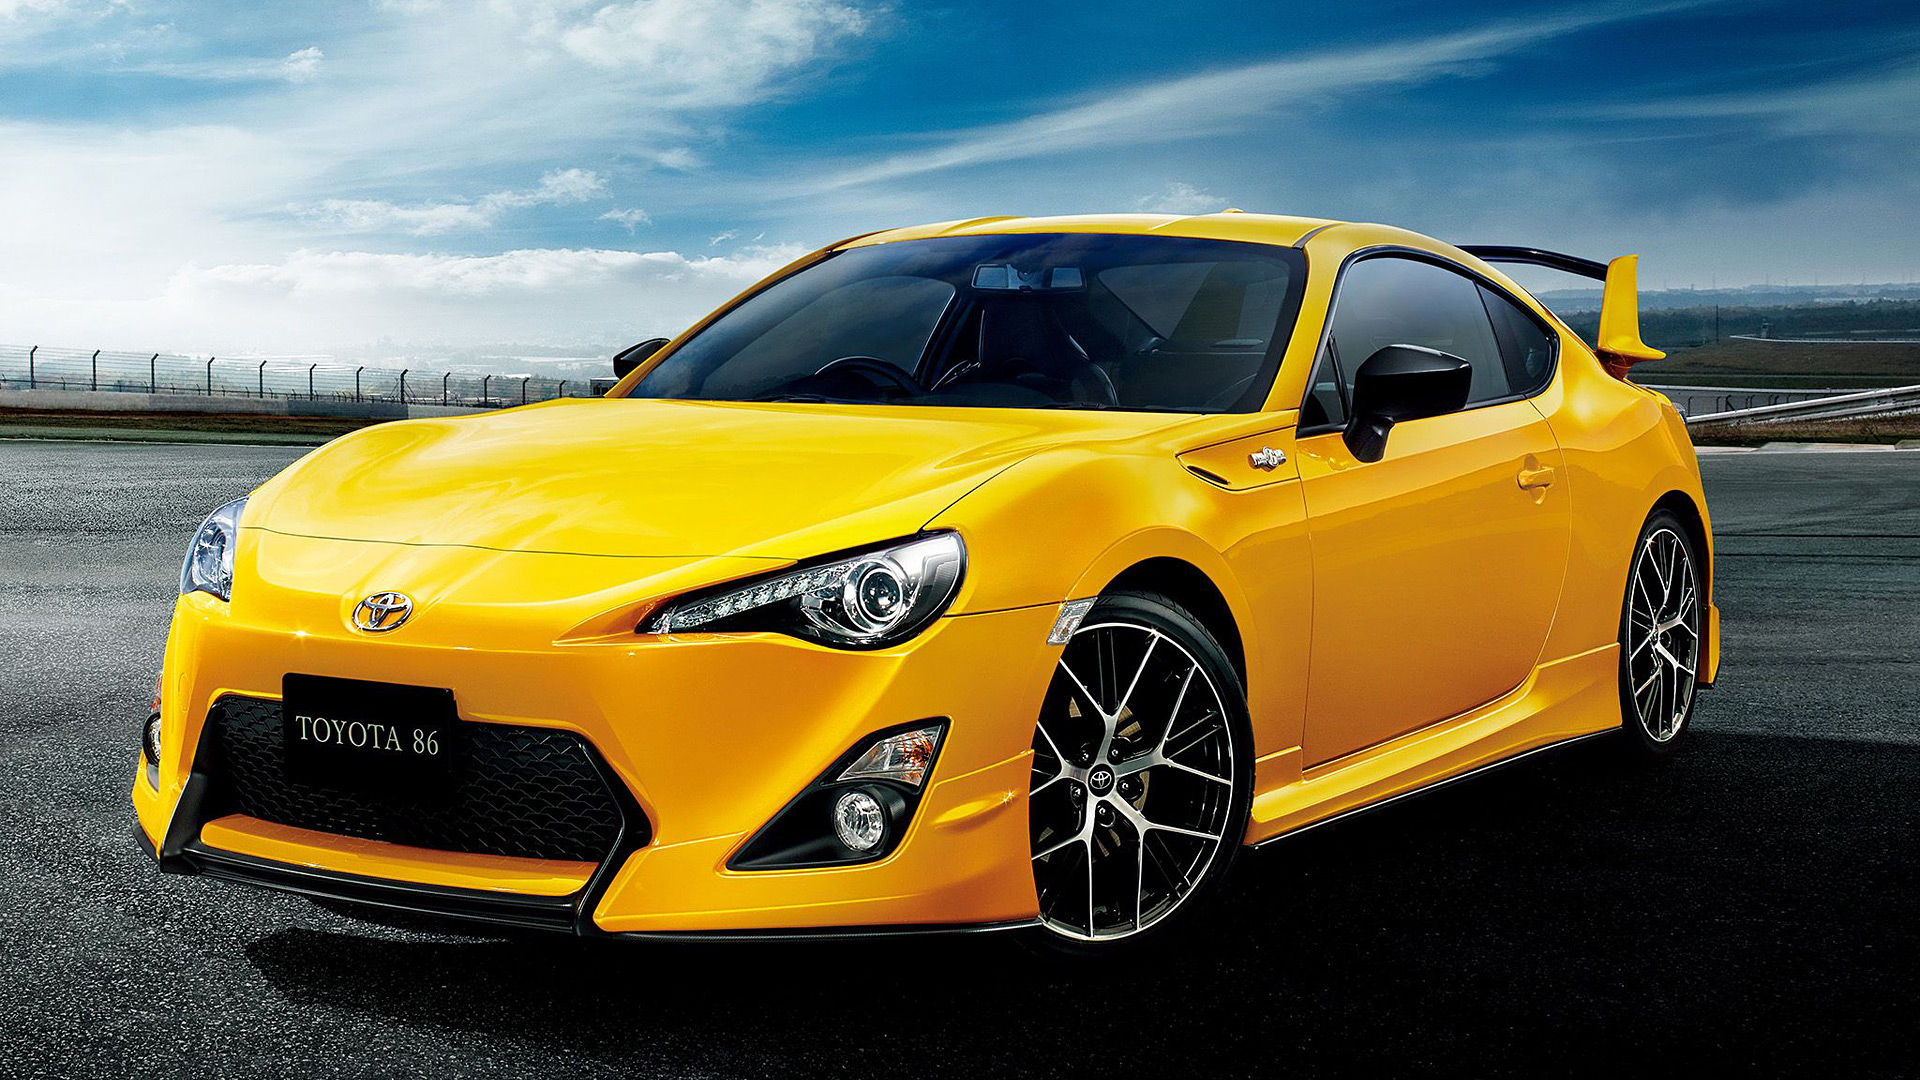 2015 Toyota GT 86 Yellow Limited